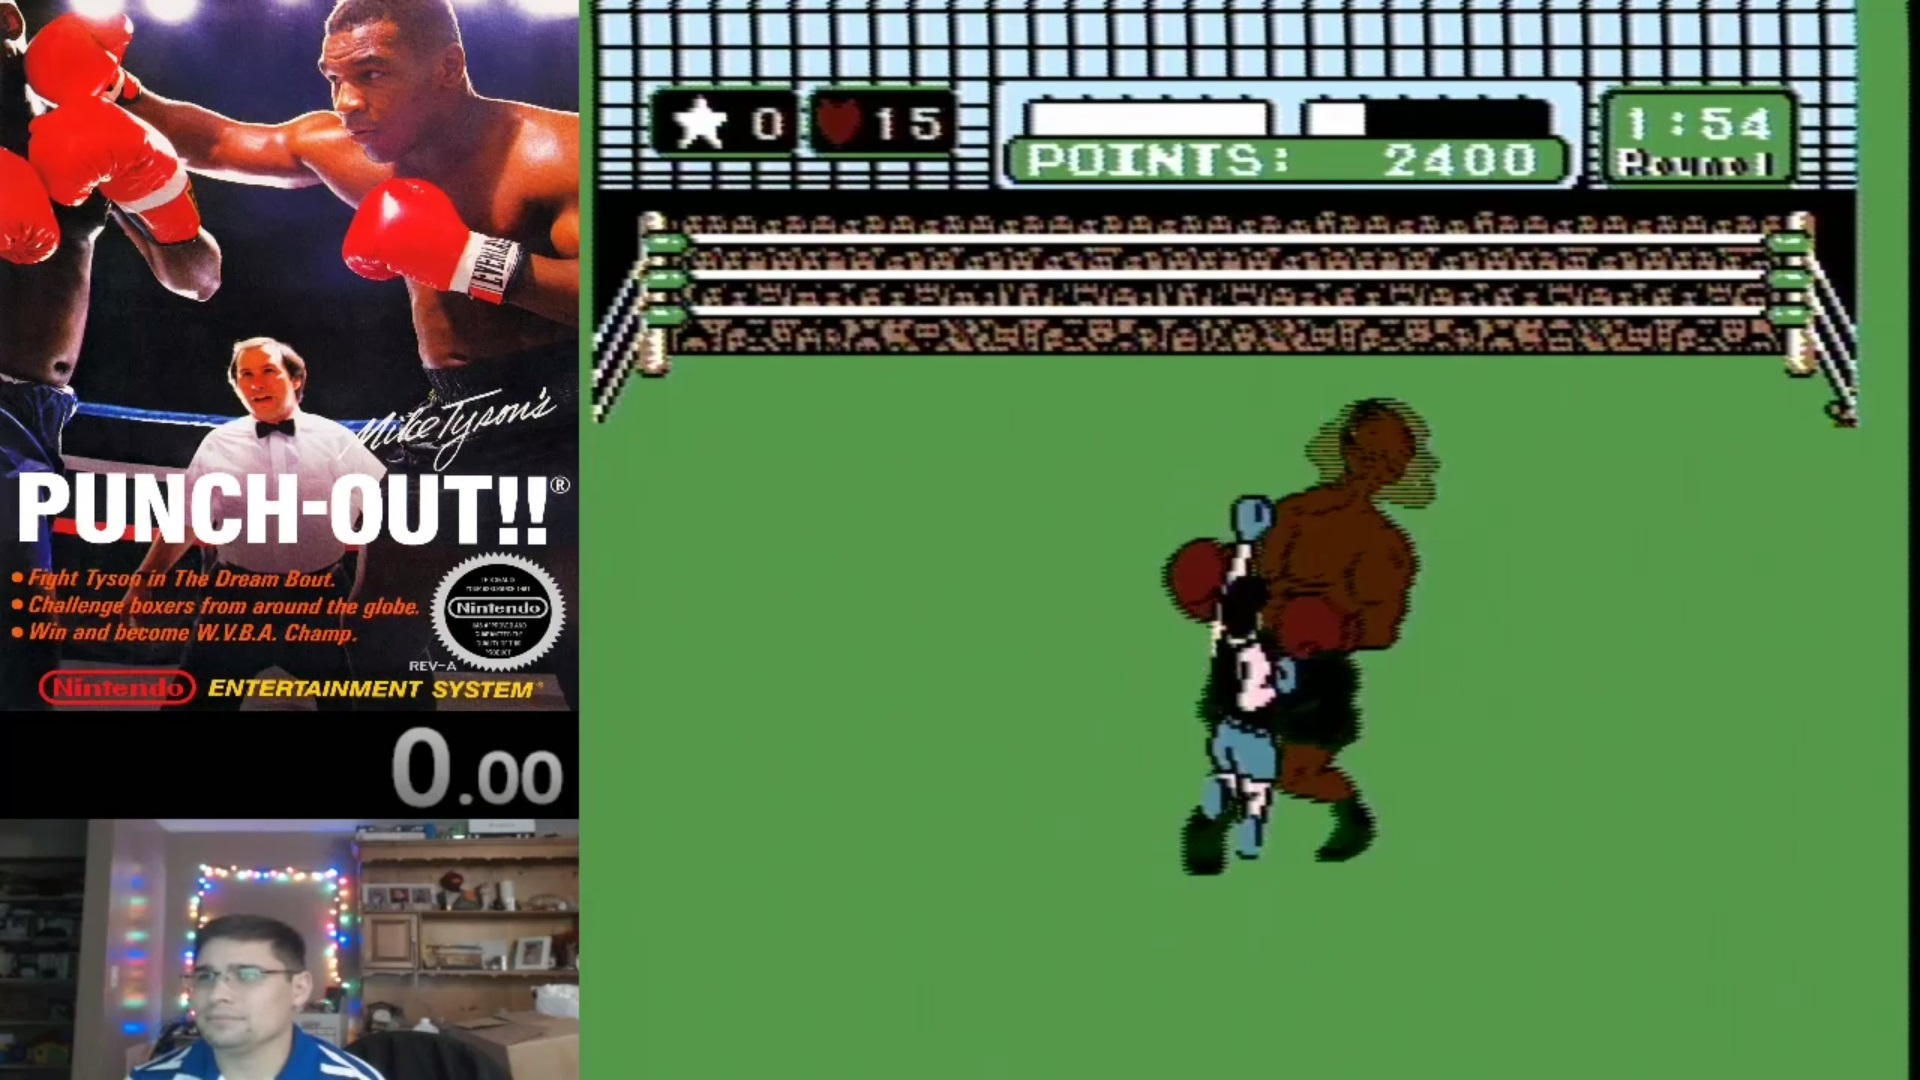 guy-knocks-out-mike-tyson-in-punch-out-in-under-two-and-a-half-minutes-social.jpg